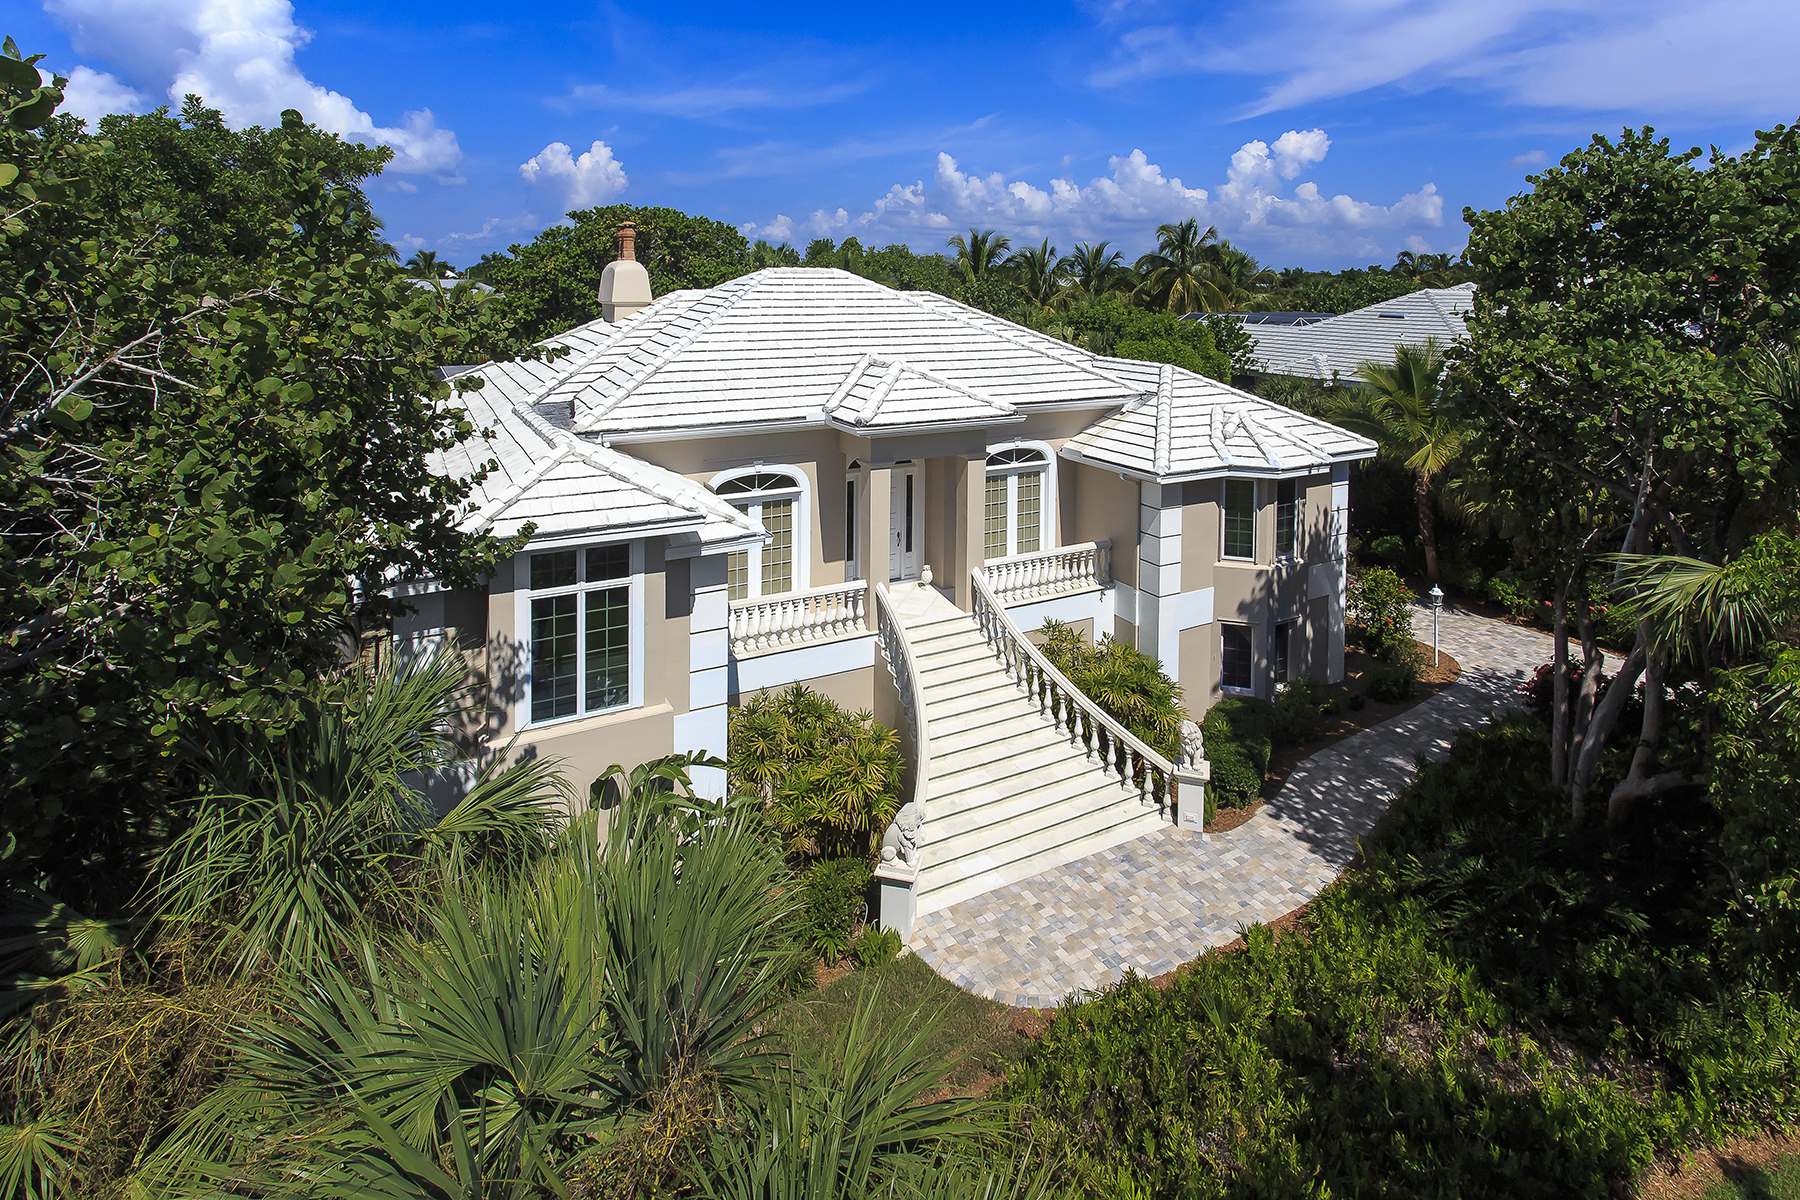 Single Family Home for Sale at SANIBEL 626 Kinzie Island Ct, Sanibel, Florida 33957 United States